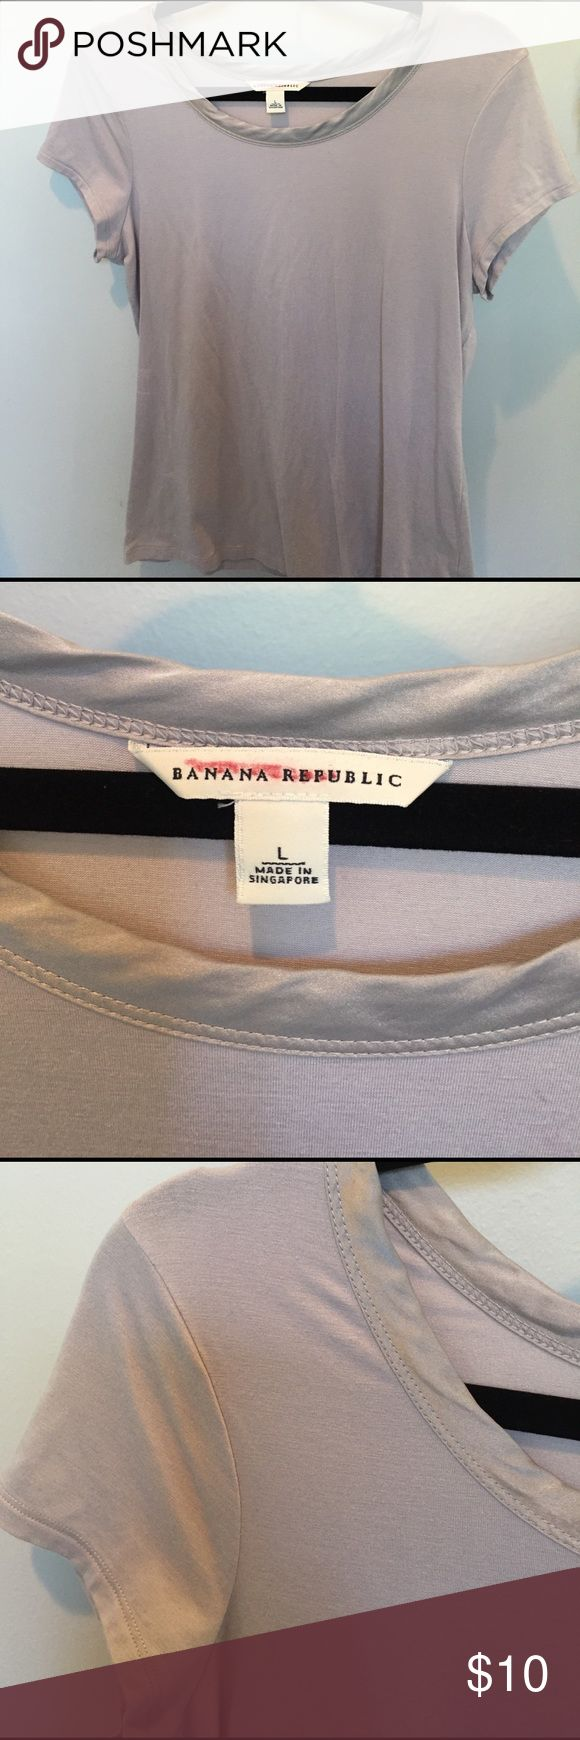 Banana Republic Luxe Touch T-shirt Pale gray tee with satin trim neckline. Fitted large. EUC 🏡🚭🏡 Banana Republic Tops Tees - Short Sleeve